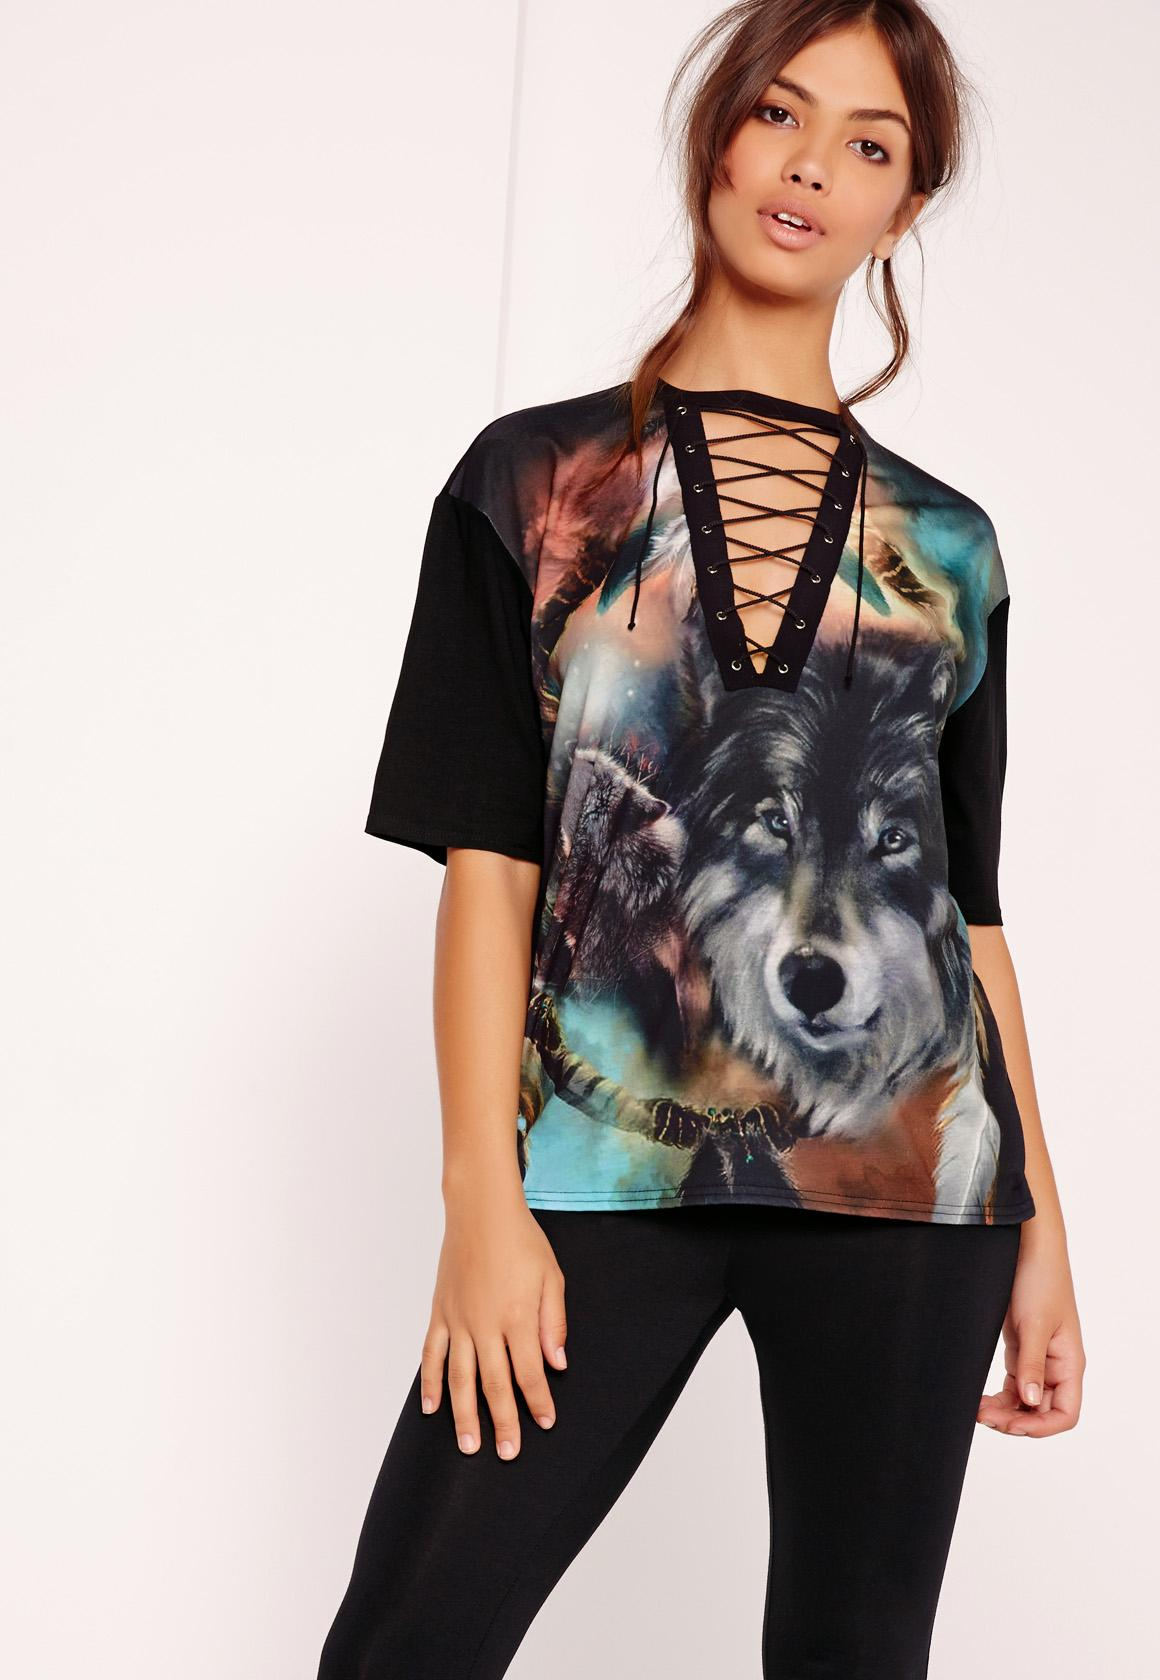 Black t shirt with lace - Wolf Print Lace Up T Shirt Black